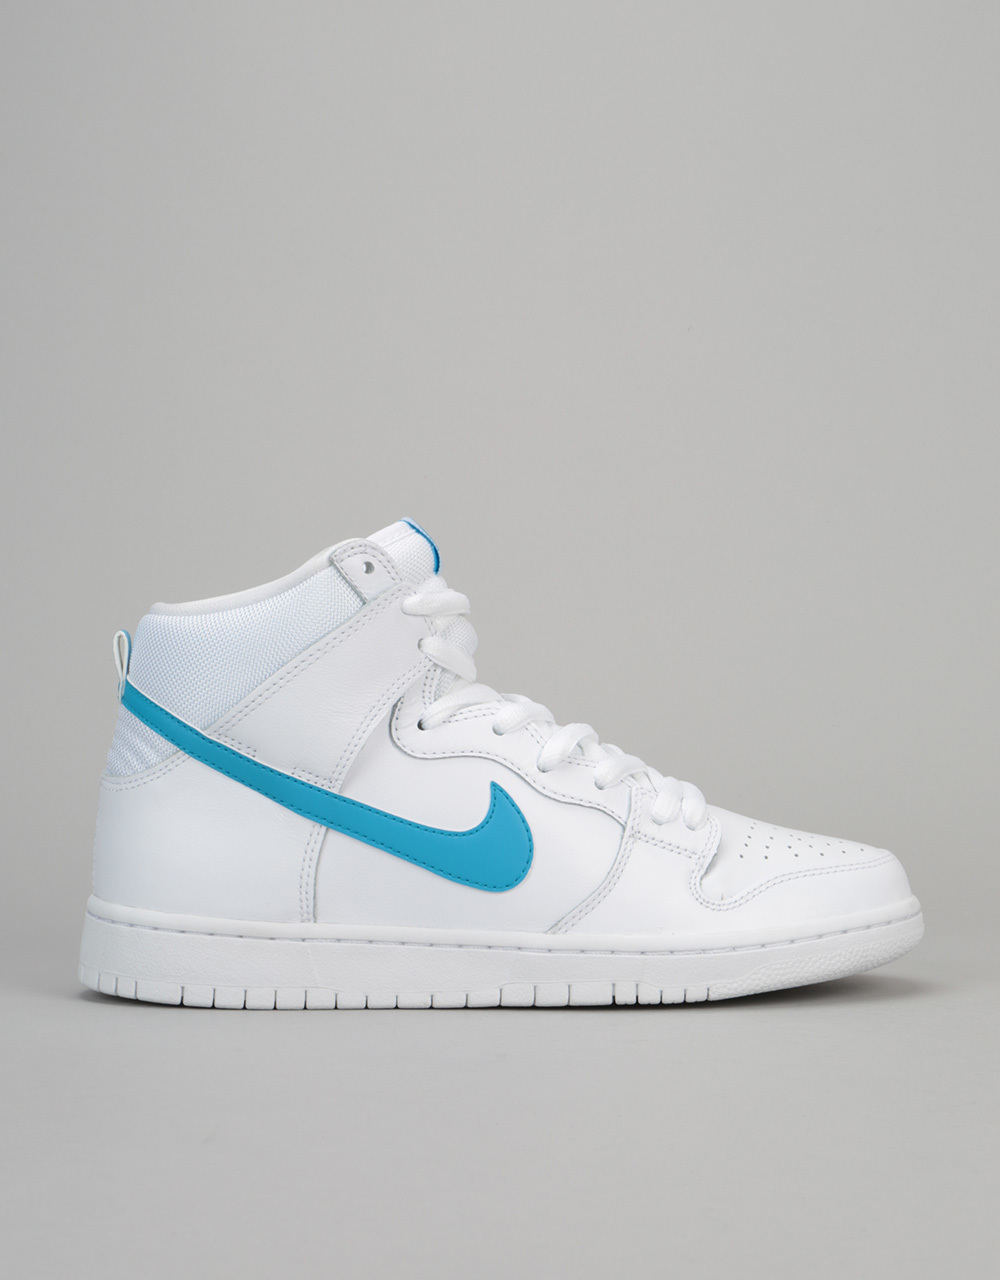 955f018d96aaf2 Nike SB Dunk High TRD QS Skate Shoes - White Orion Blue-White ...